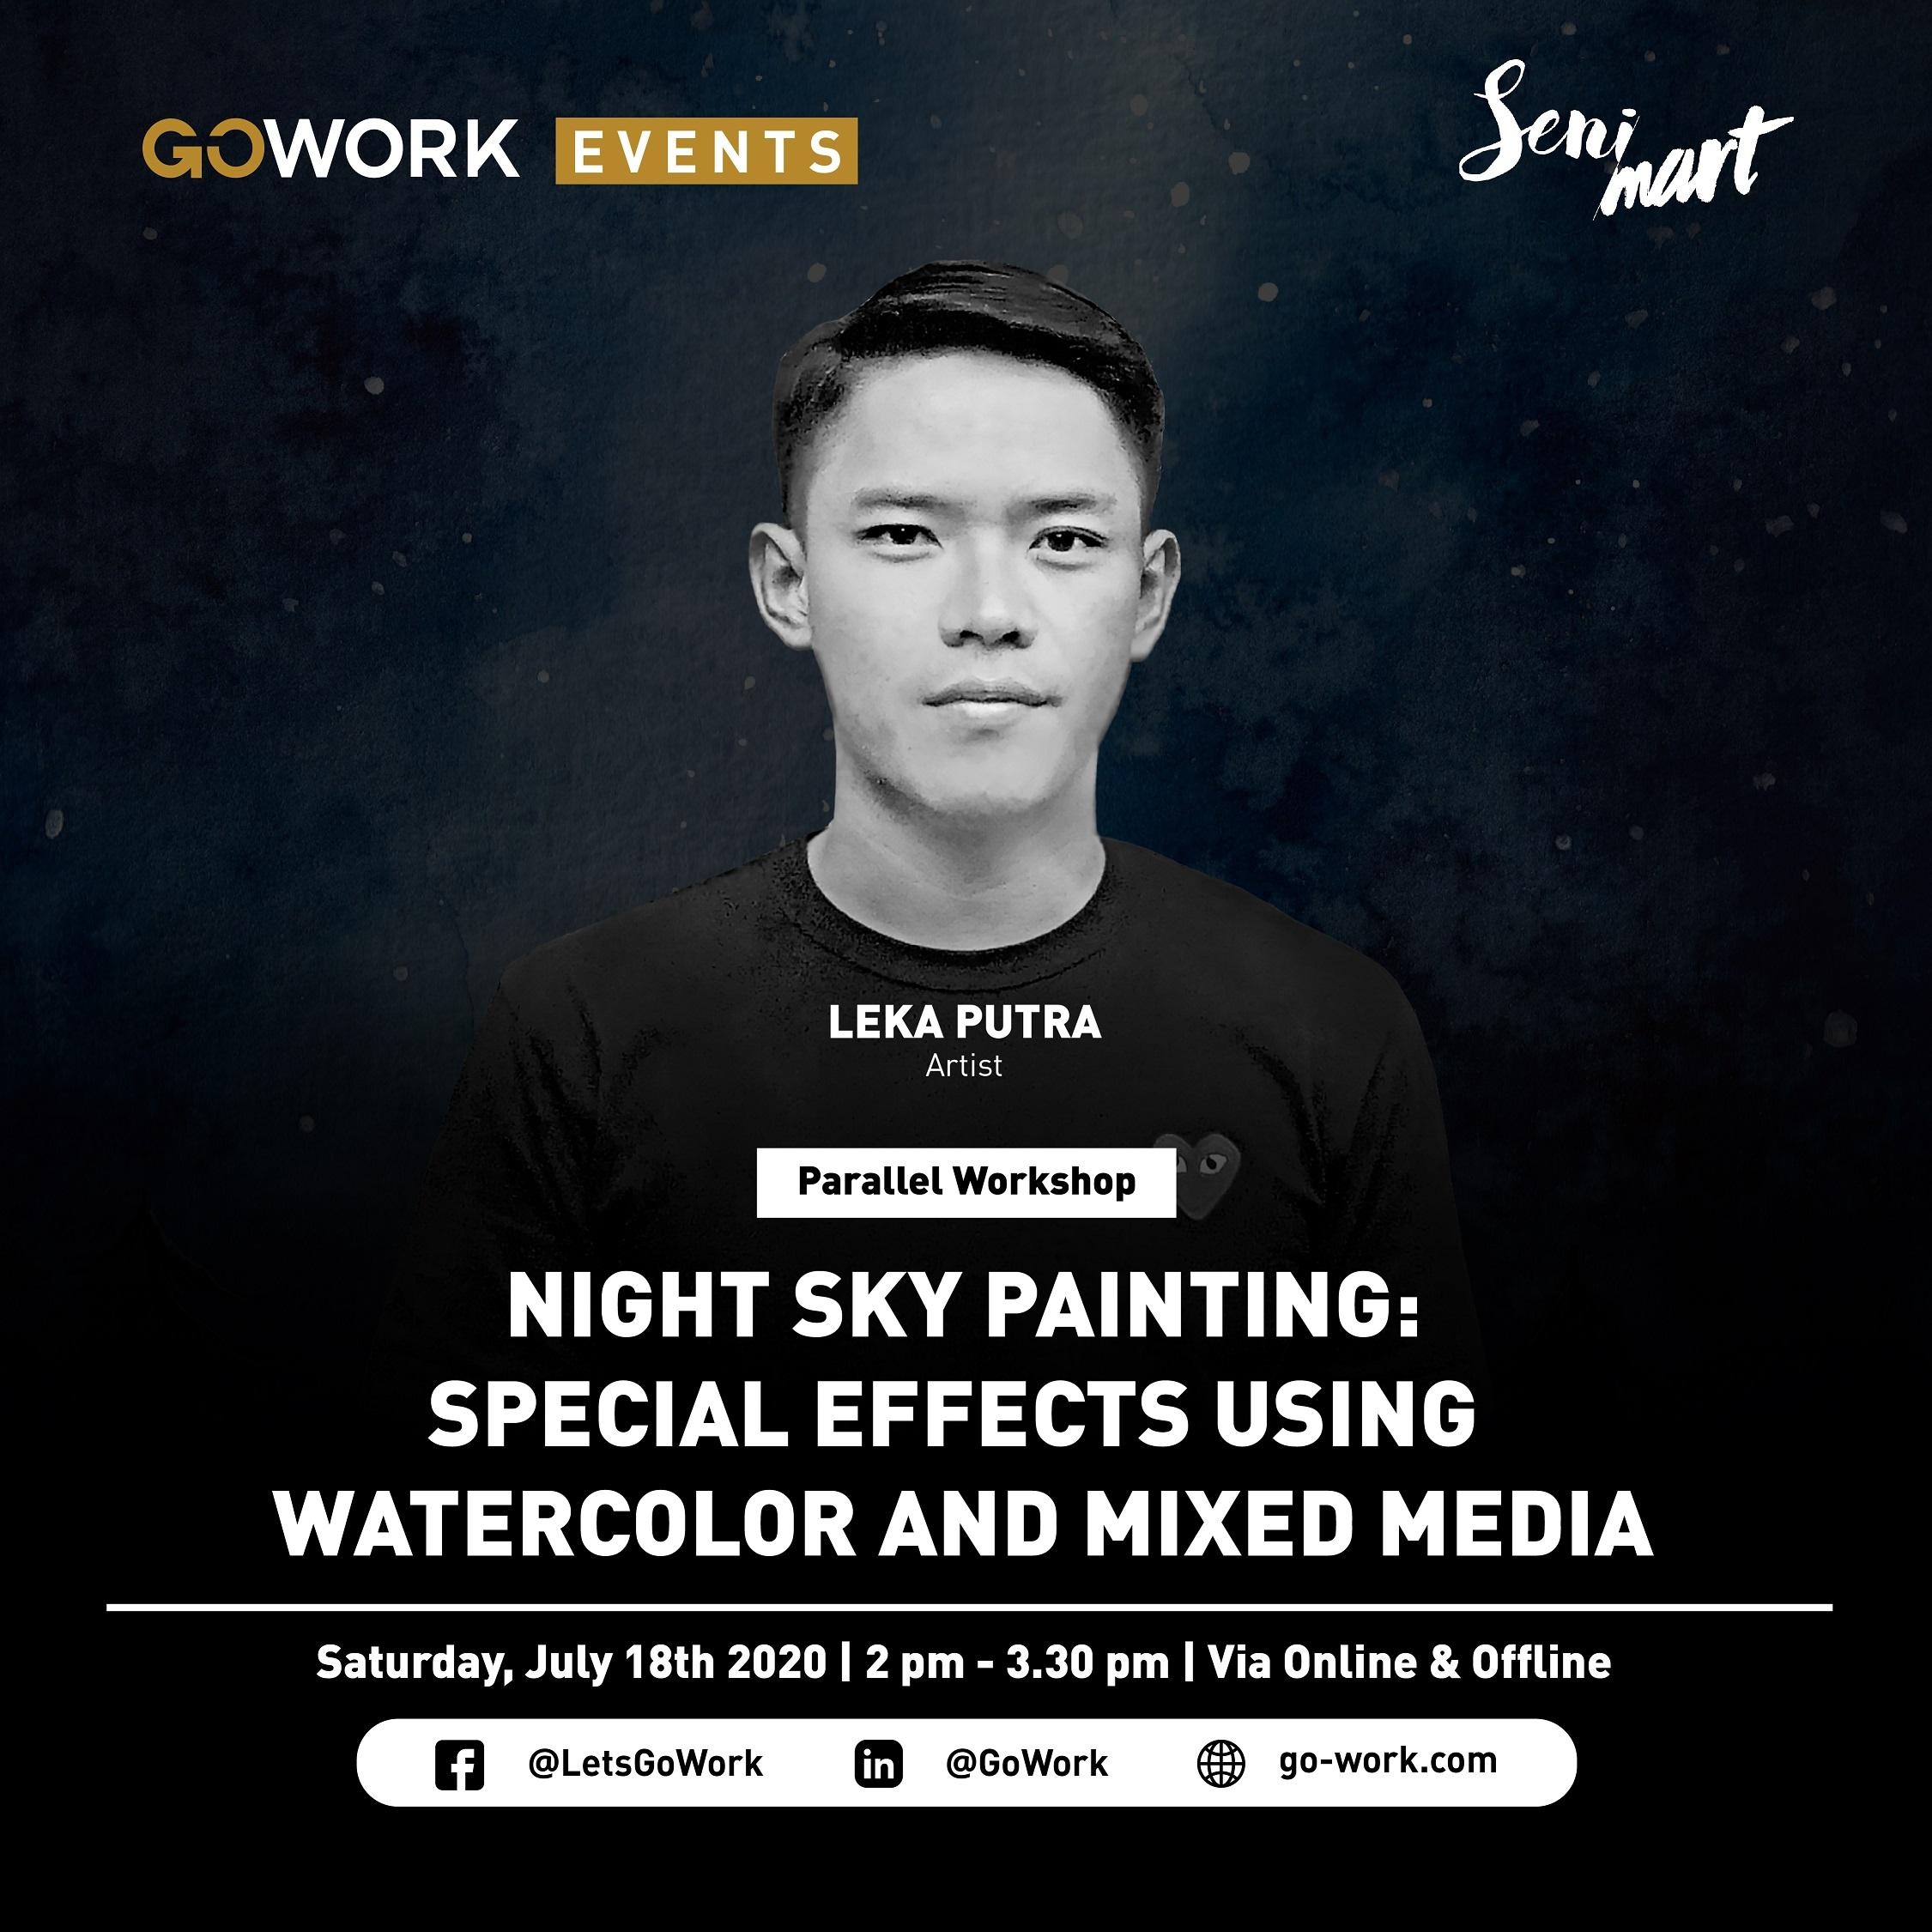 Online Event - Night Sky Painting: Special Effects Using Watercolor & Mixed Media